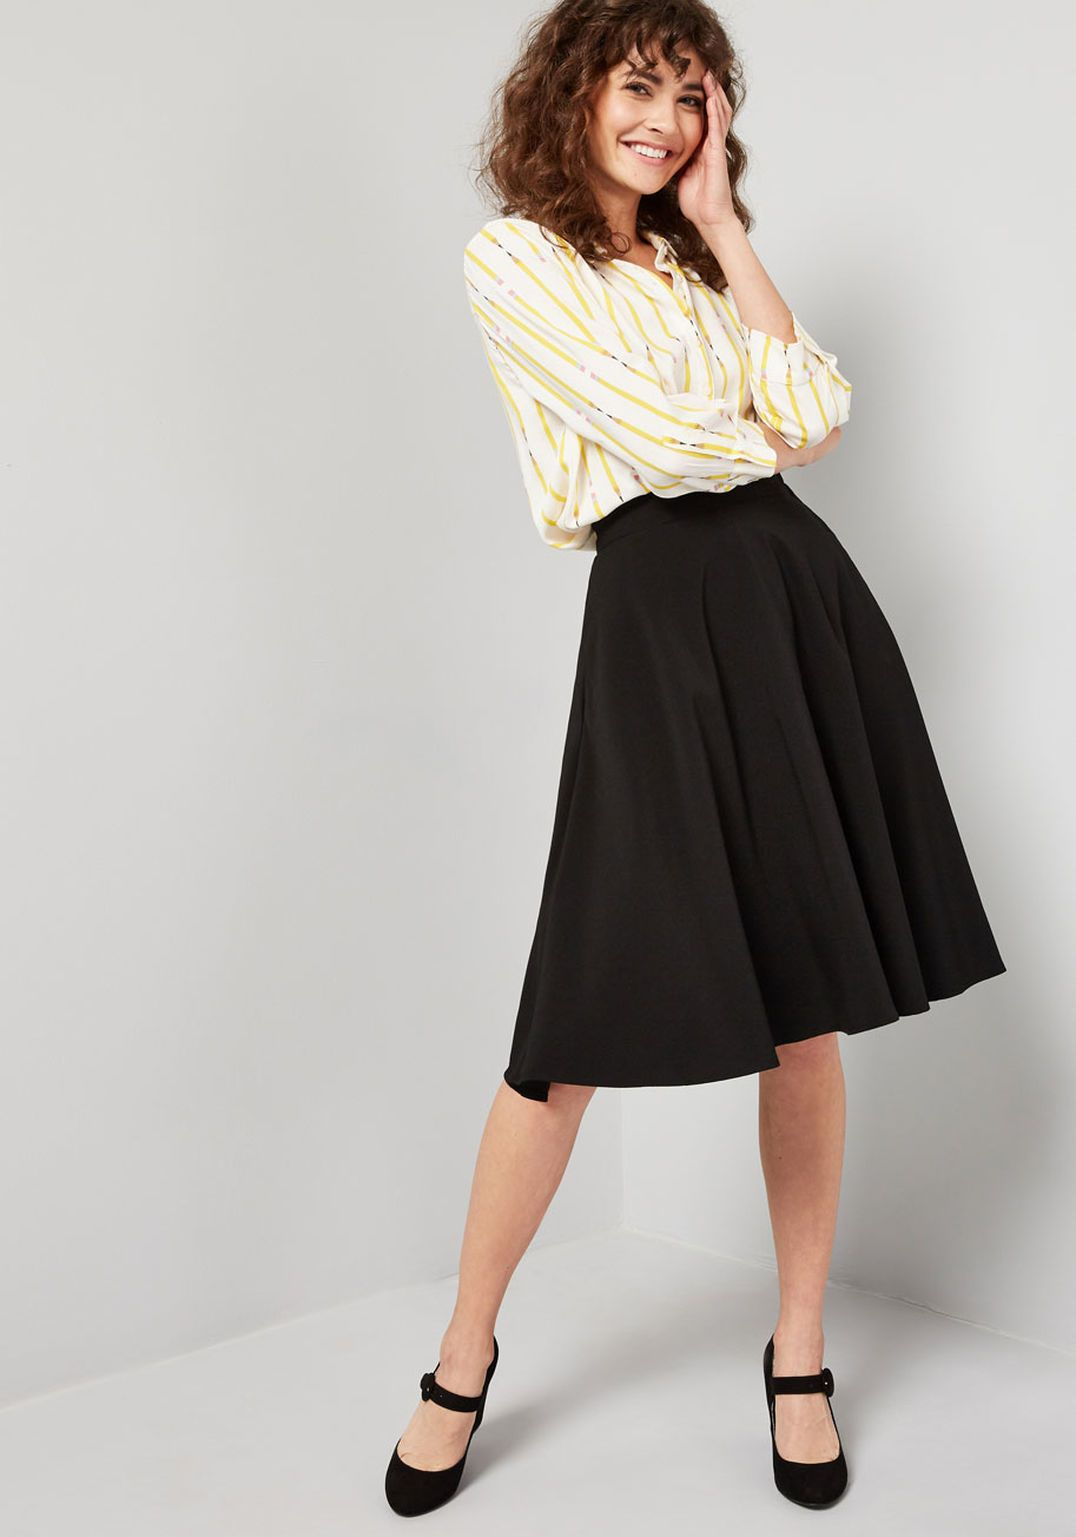 c0baf7d24281bb Just This Sway A-Line Skirt in 2019 | Date Inspo | A line skirt midi ...